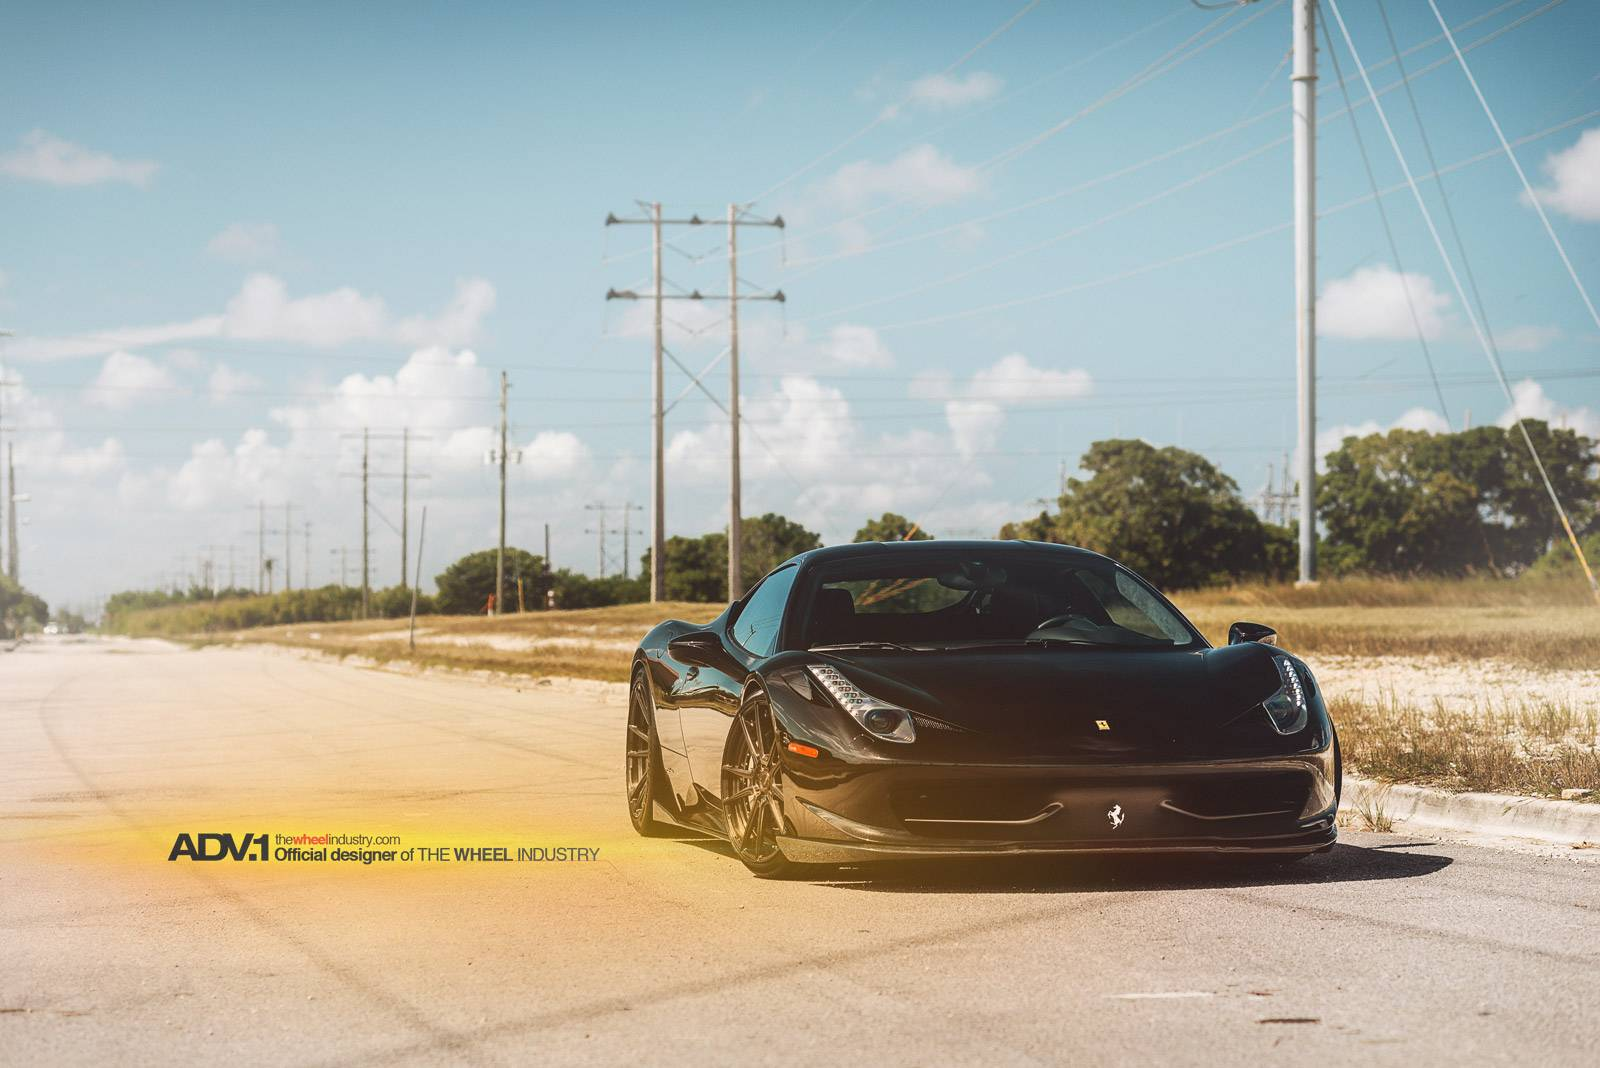 Ferrari 458 Italia 2013 Blacked Out